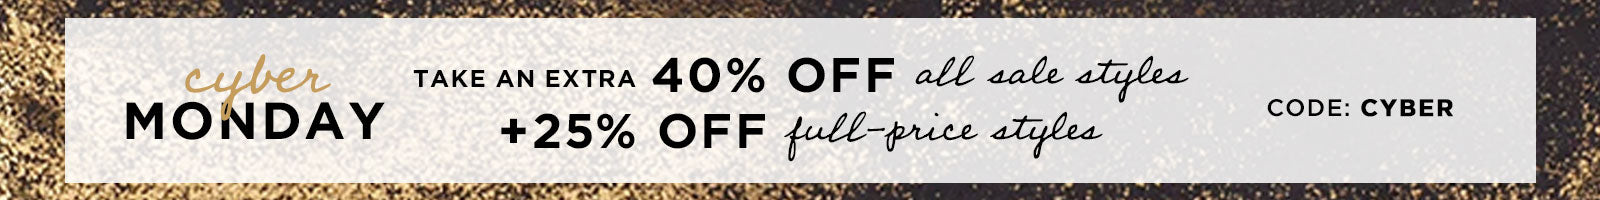 Cyber Monday Sale, Happening Now! Extra 40% Off Sale Styles + 25% Off All Full-Price Styles. Code: CYBER